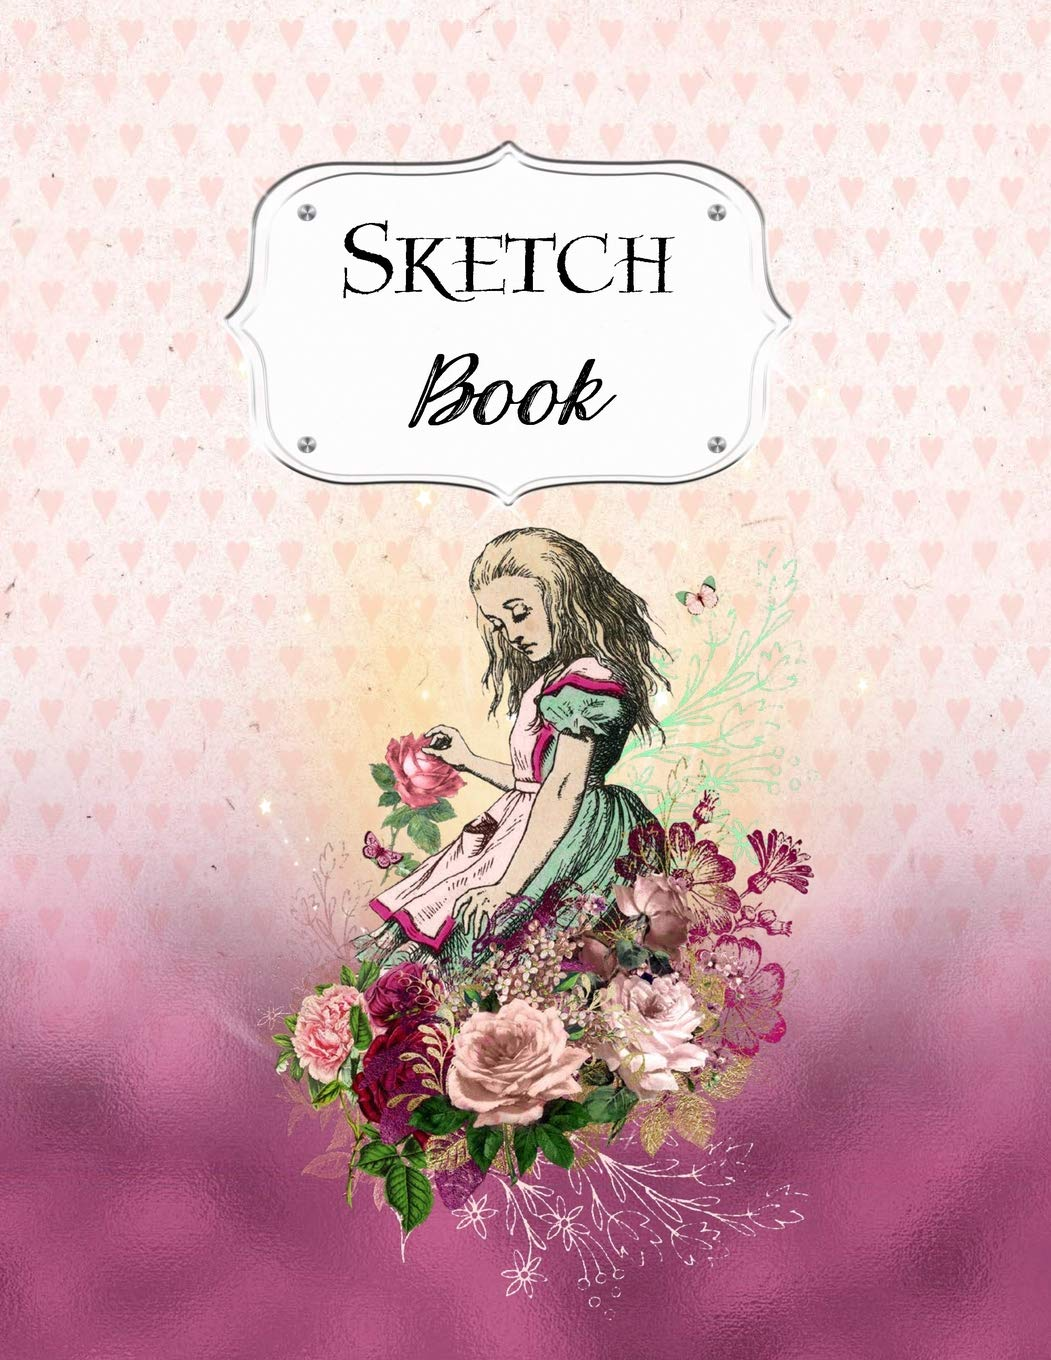 Sketch Book Alice In Wonderland Sketchbook Scetchpad For Drawing Or Doodling Notebook Pad For Creative Artists 1 Pink Artist Series Avenue J 9781072159094 Amazon Com Books